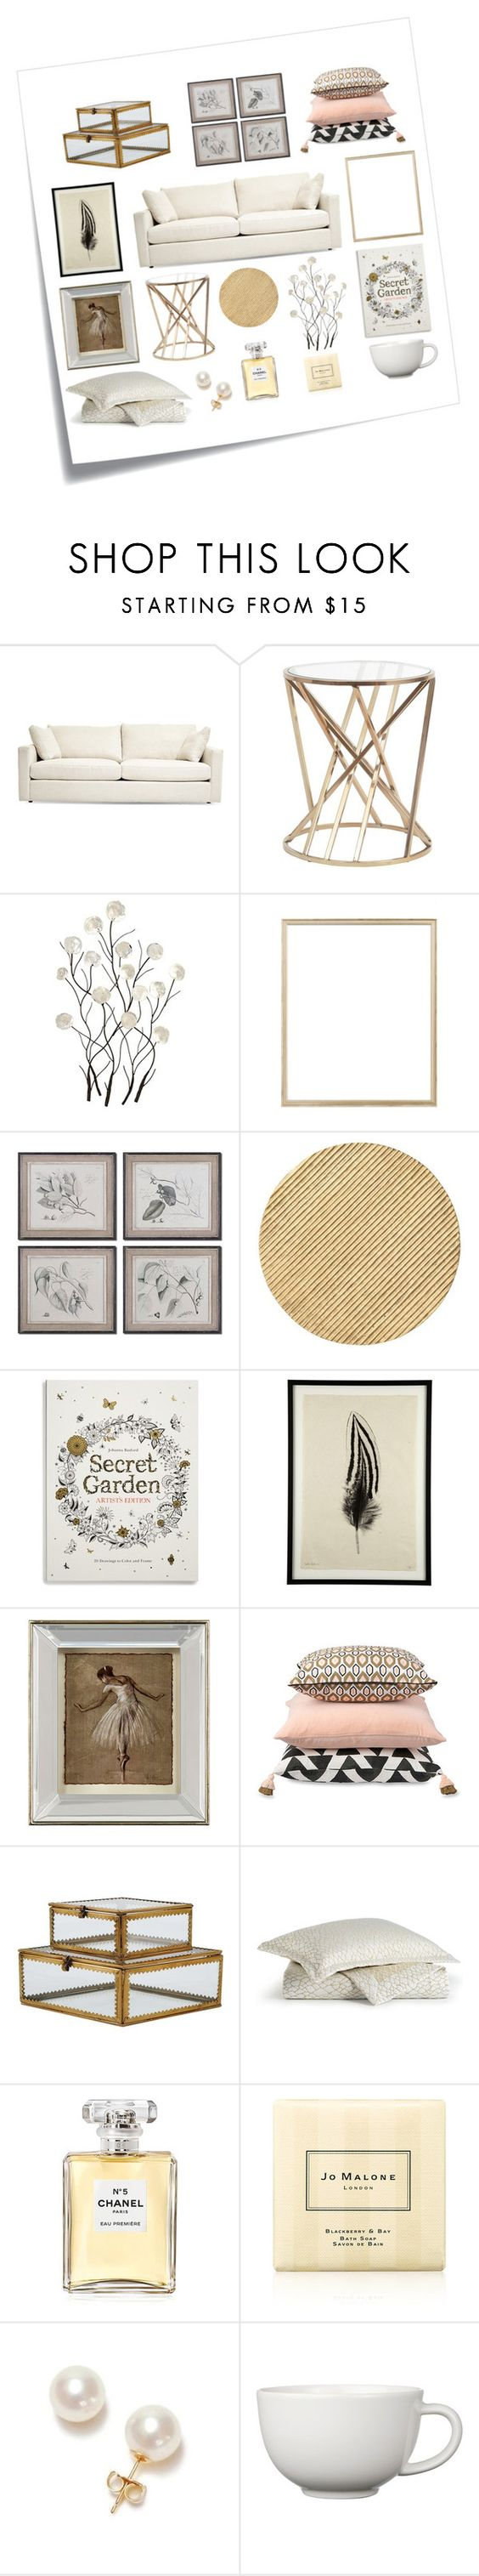 """""""Untitled #351"""" by bojana-687 ❤ liked on Polyvore featuring interior, interiors, interior design, home, home decor, interior decorating, Post-It, Universal Lighting and Decor, Rifle Paper Co and Uttermost"""